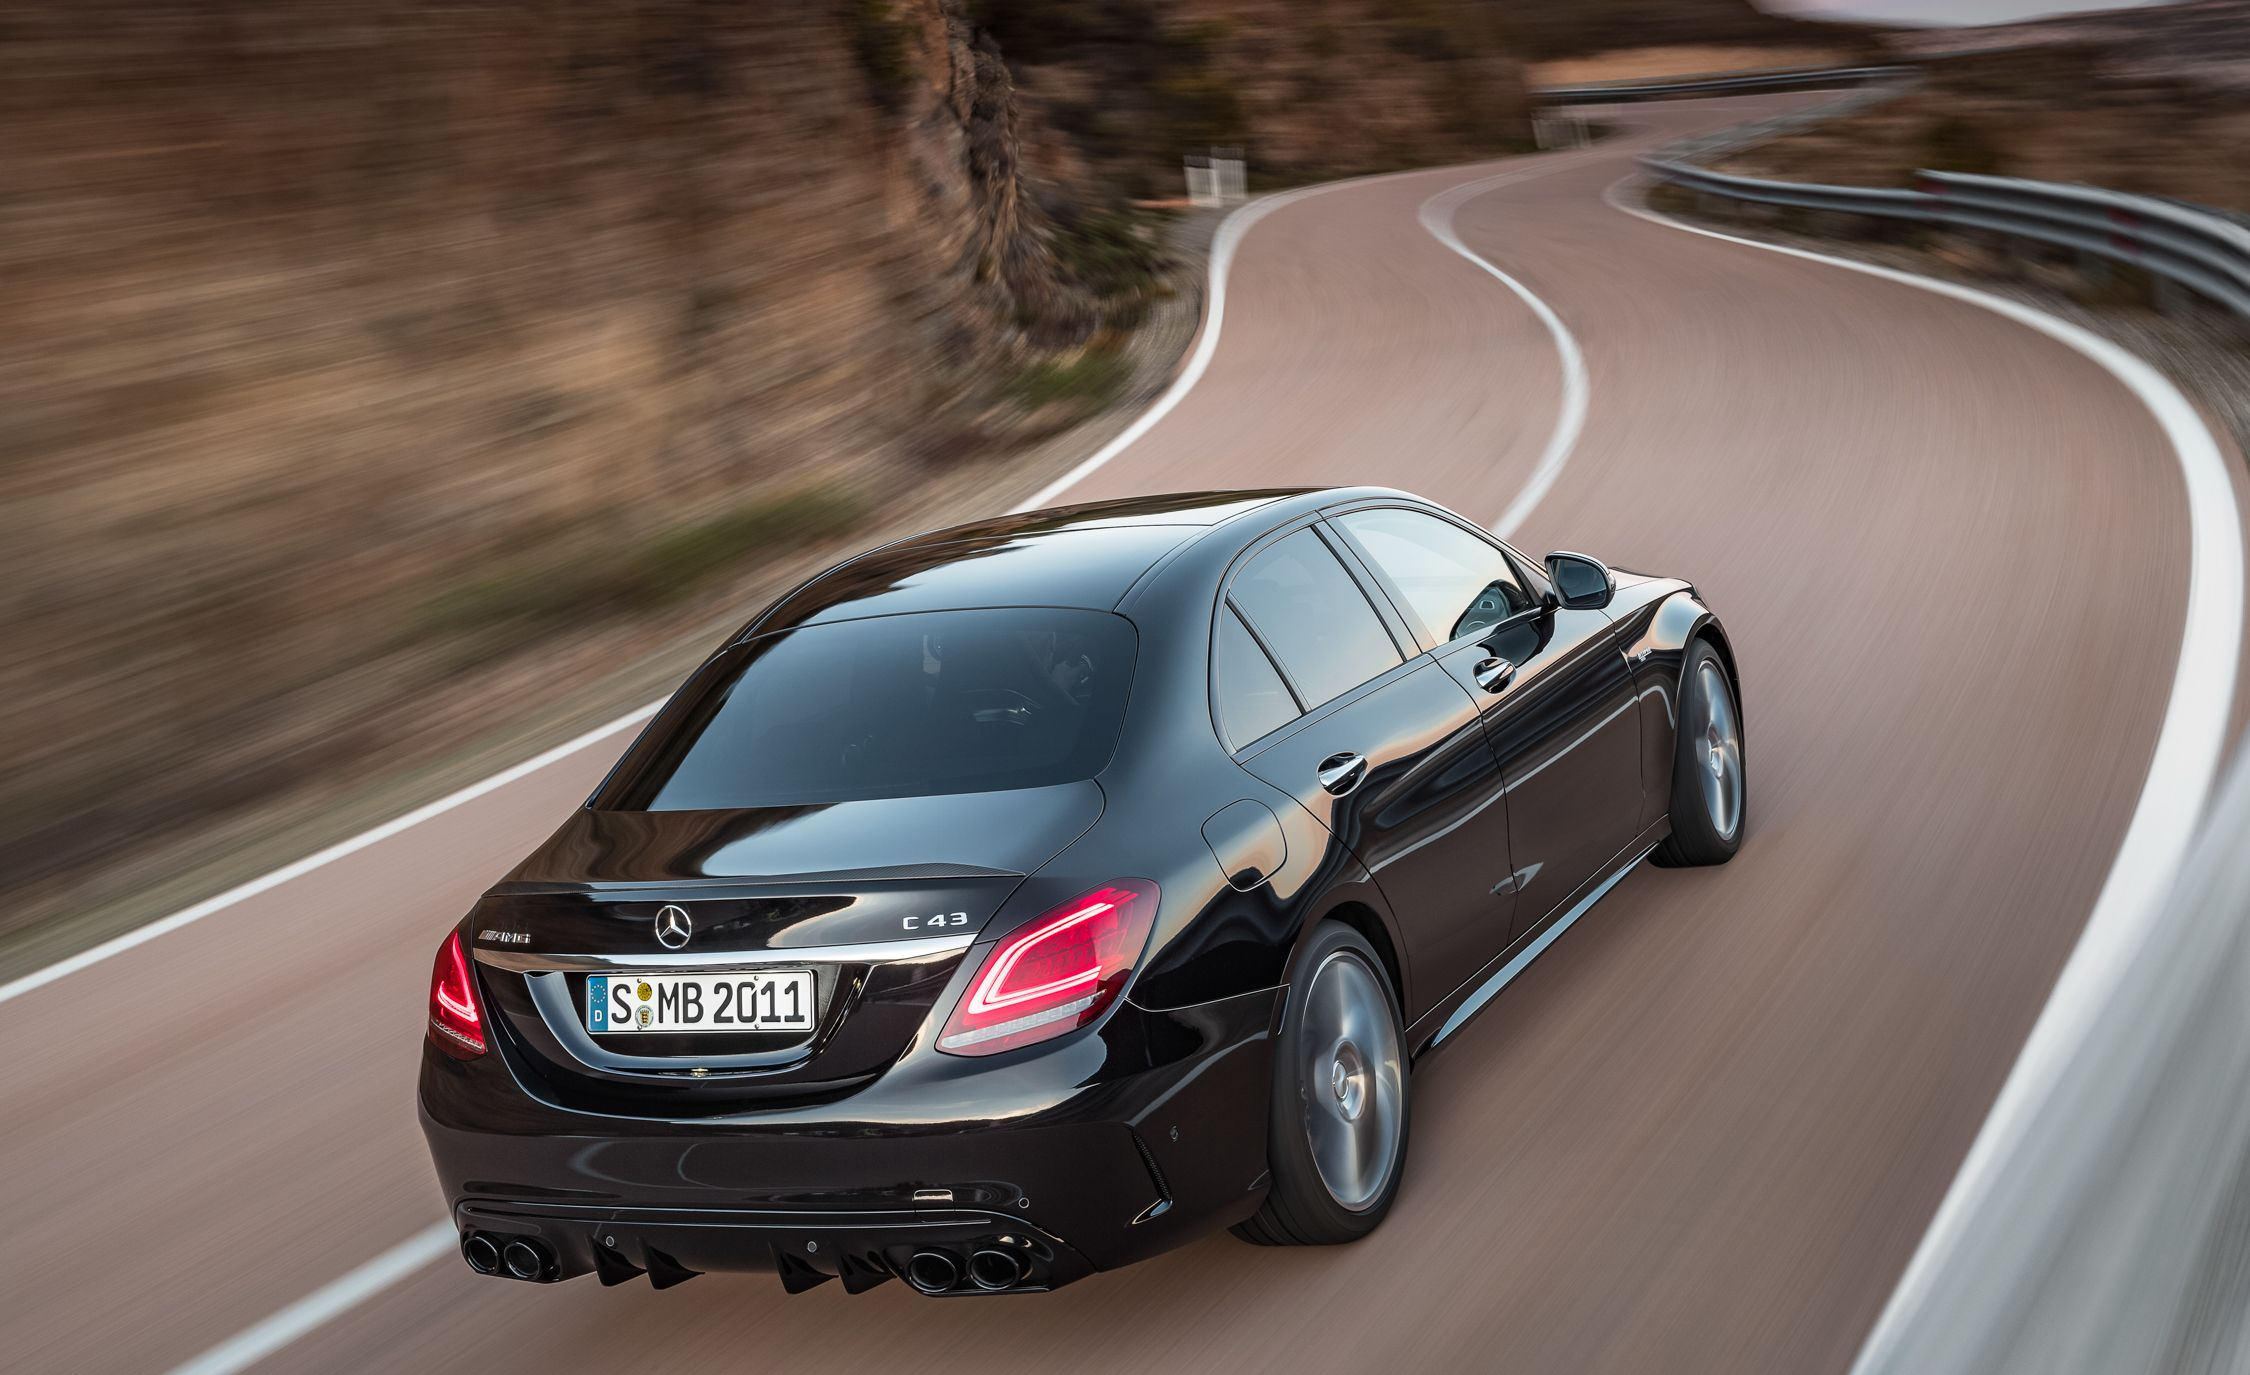 2019 Mercedes Amg C43 Reviews Price Photos And Specs Car Driver